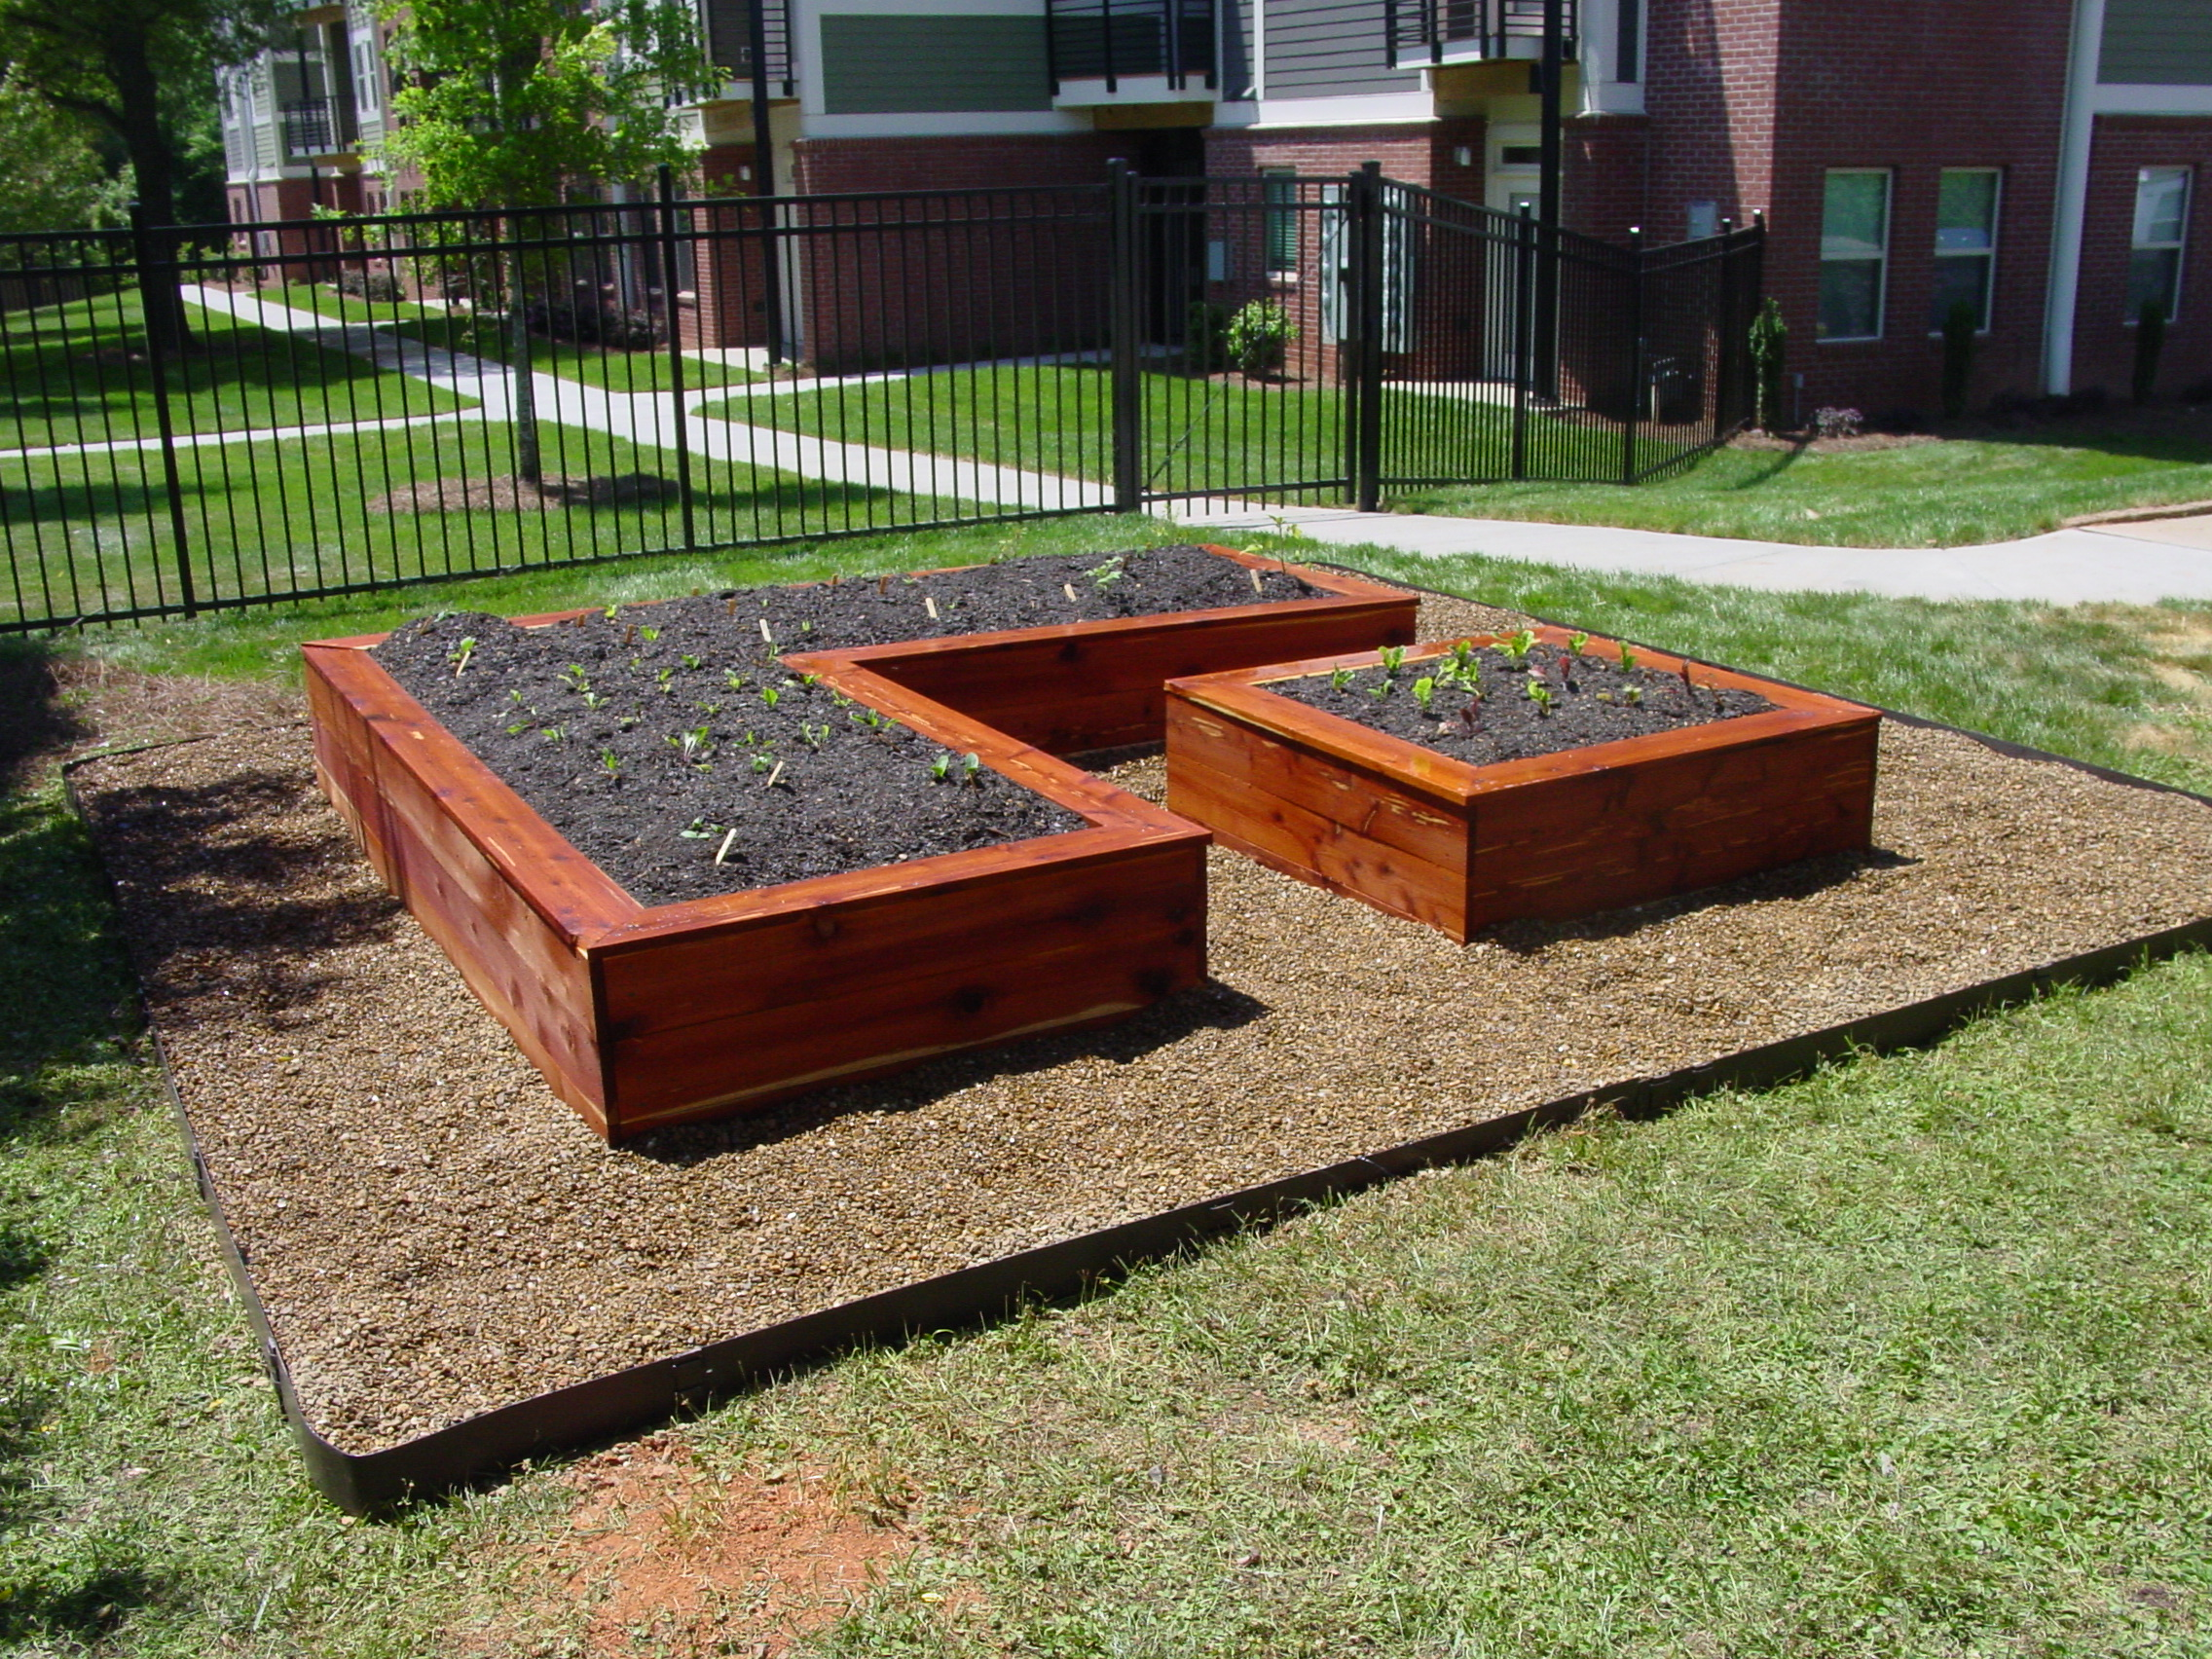 25 best ideas about raised garden beds on pinterest raised for Garden bed design ideas